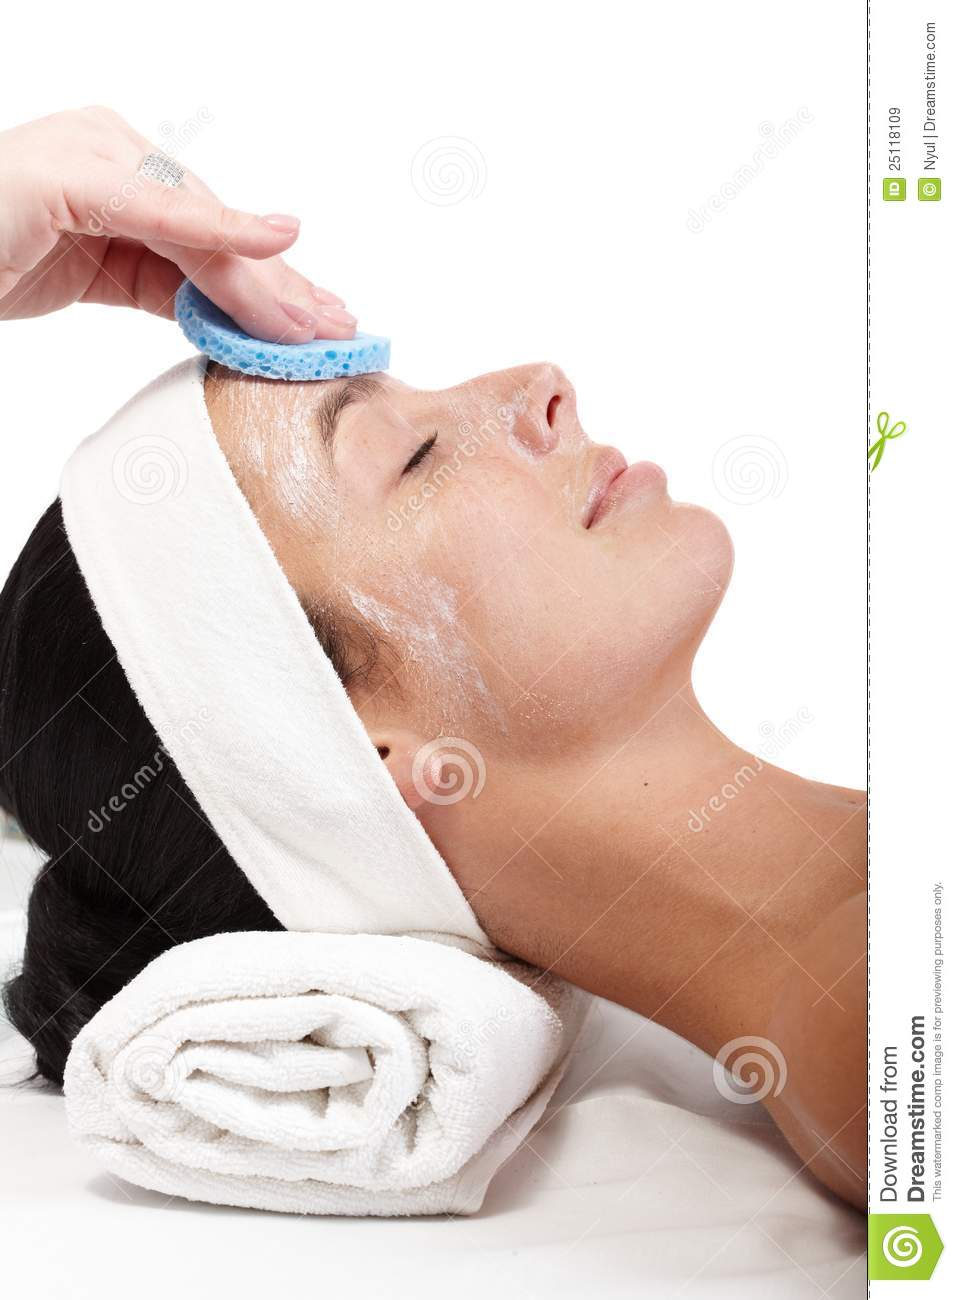 Removing facial cream